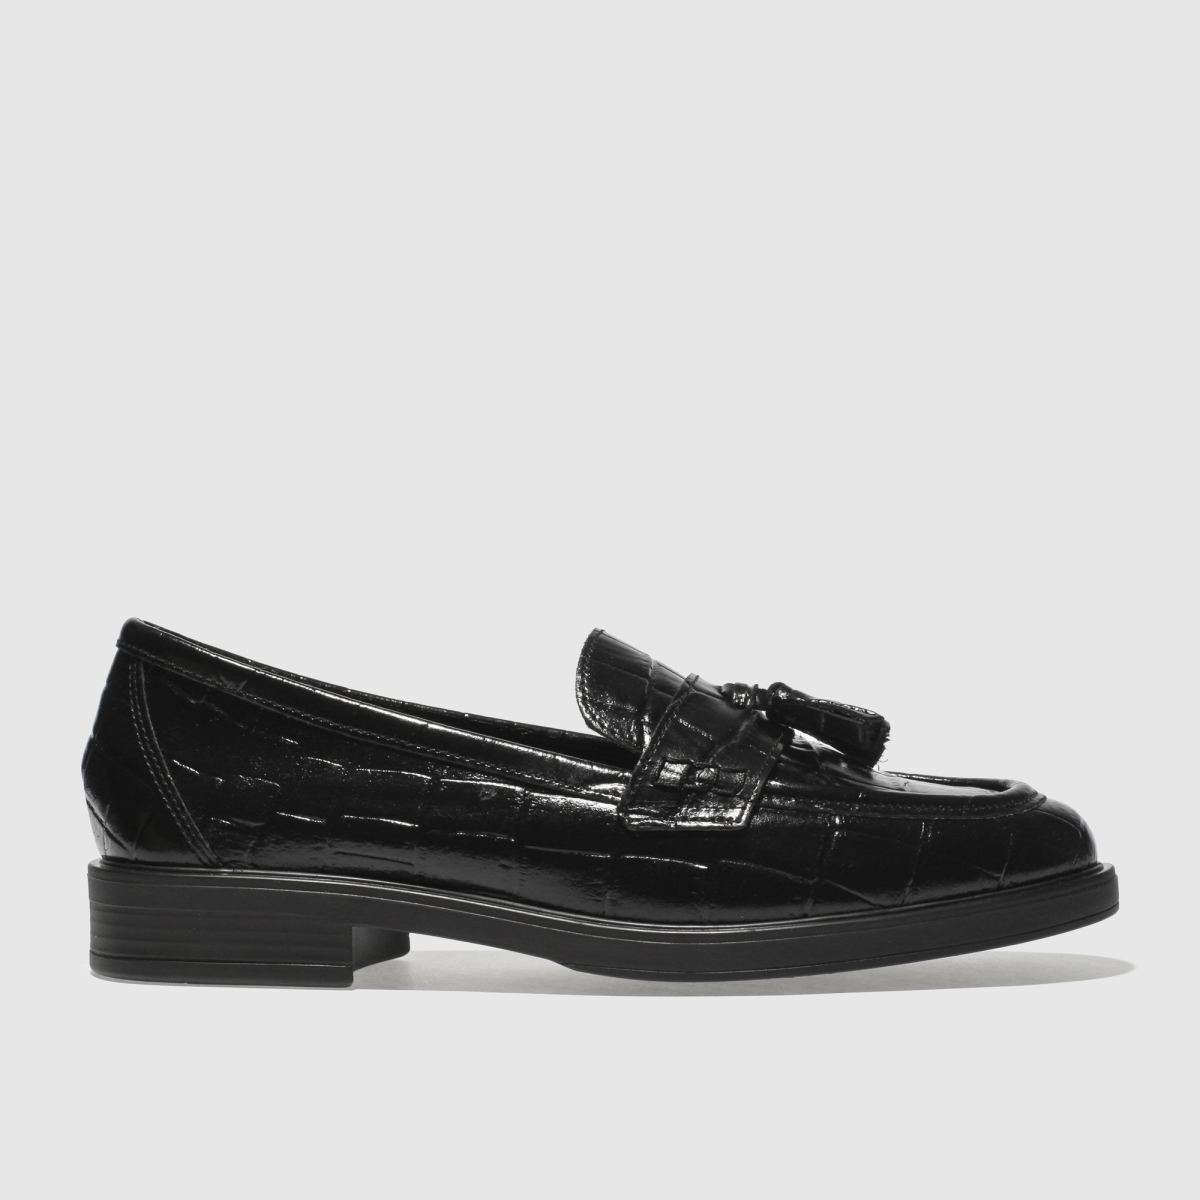 Schuh Black Snappy Flat Shoes